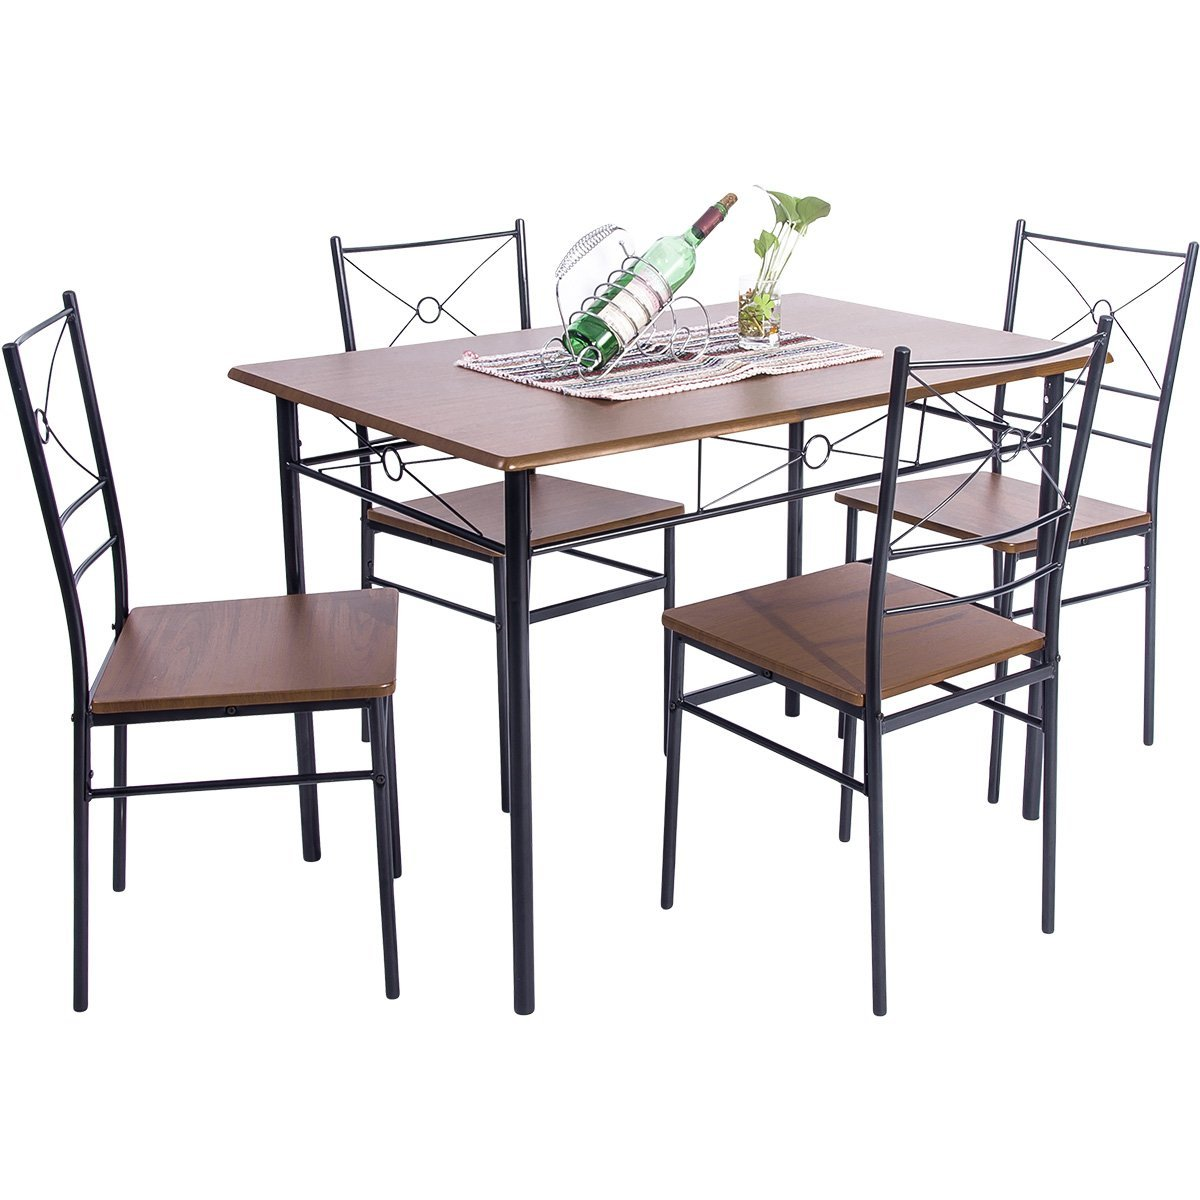 Harperu0026Bright Designs 5 Piece Wood And Metal Dining Set, Multiple Colors